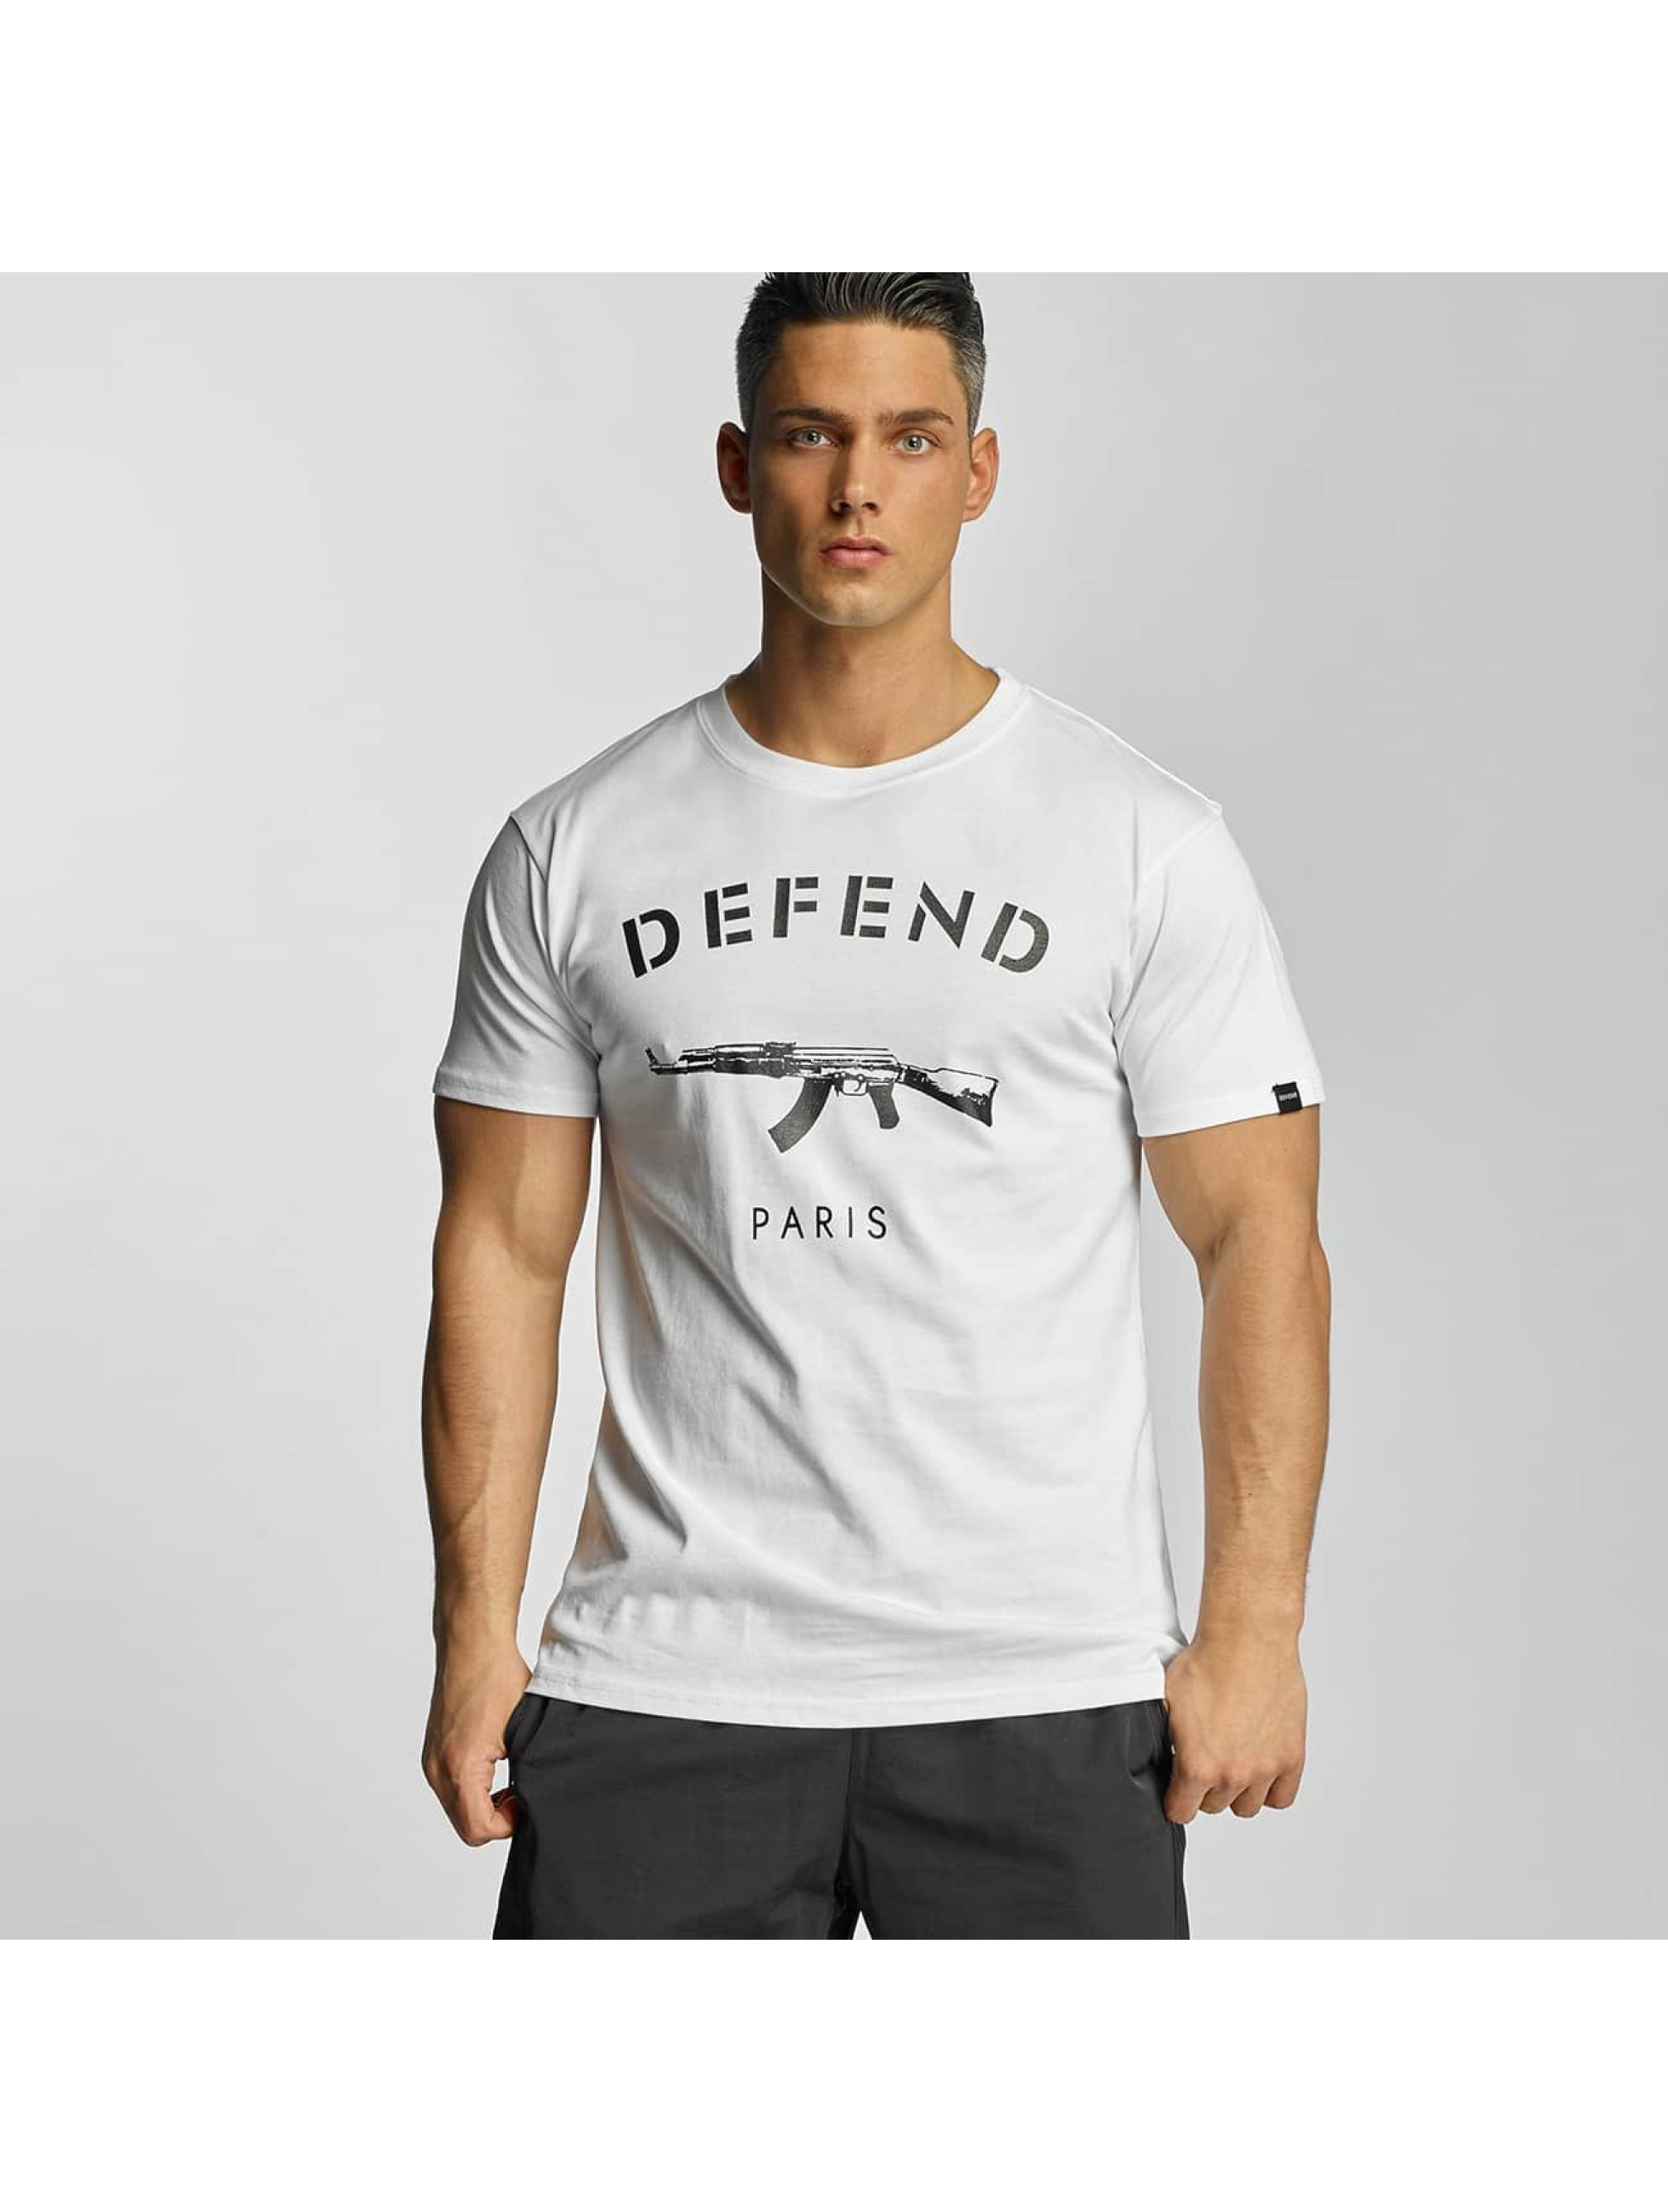 Defend Paris Männer T-Shirt Paris in weiß